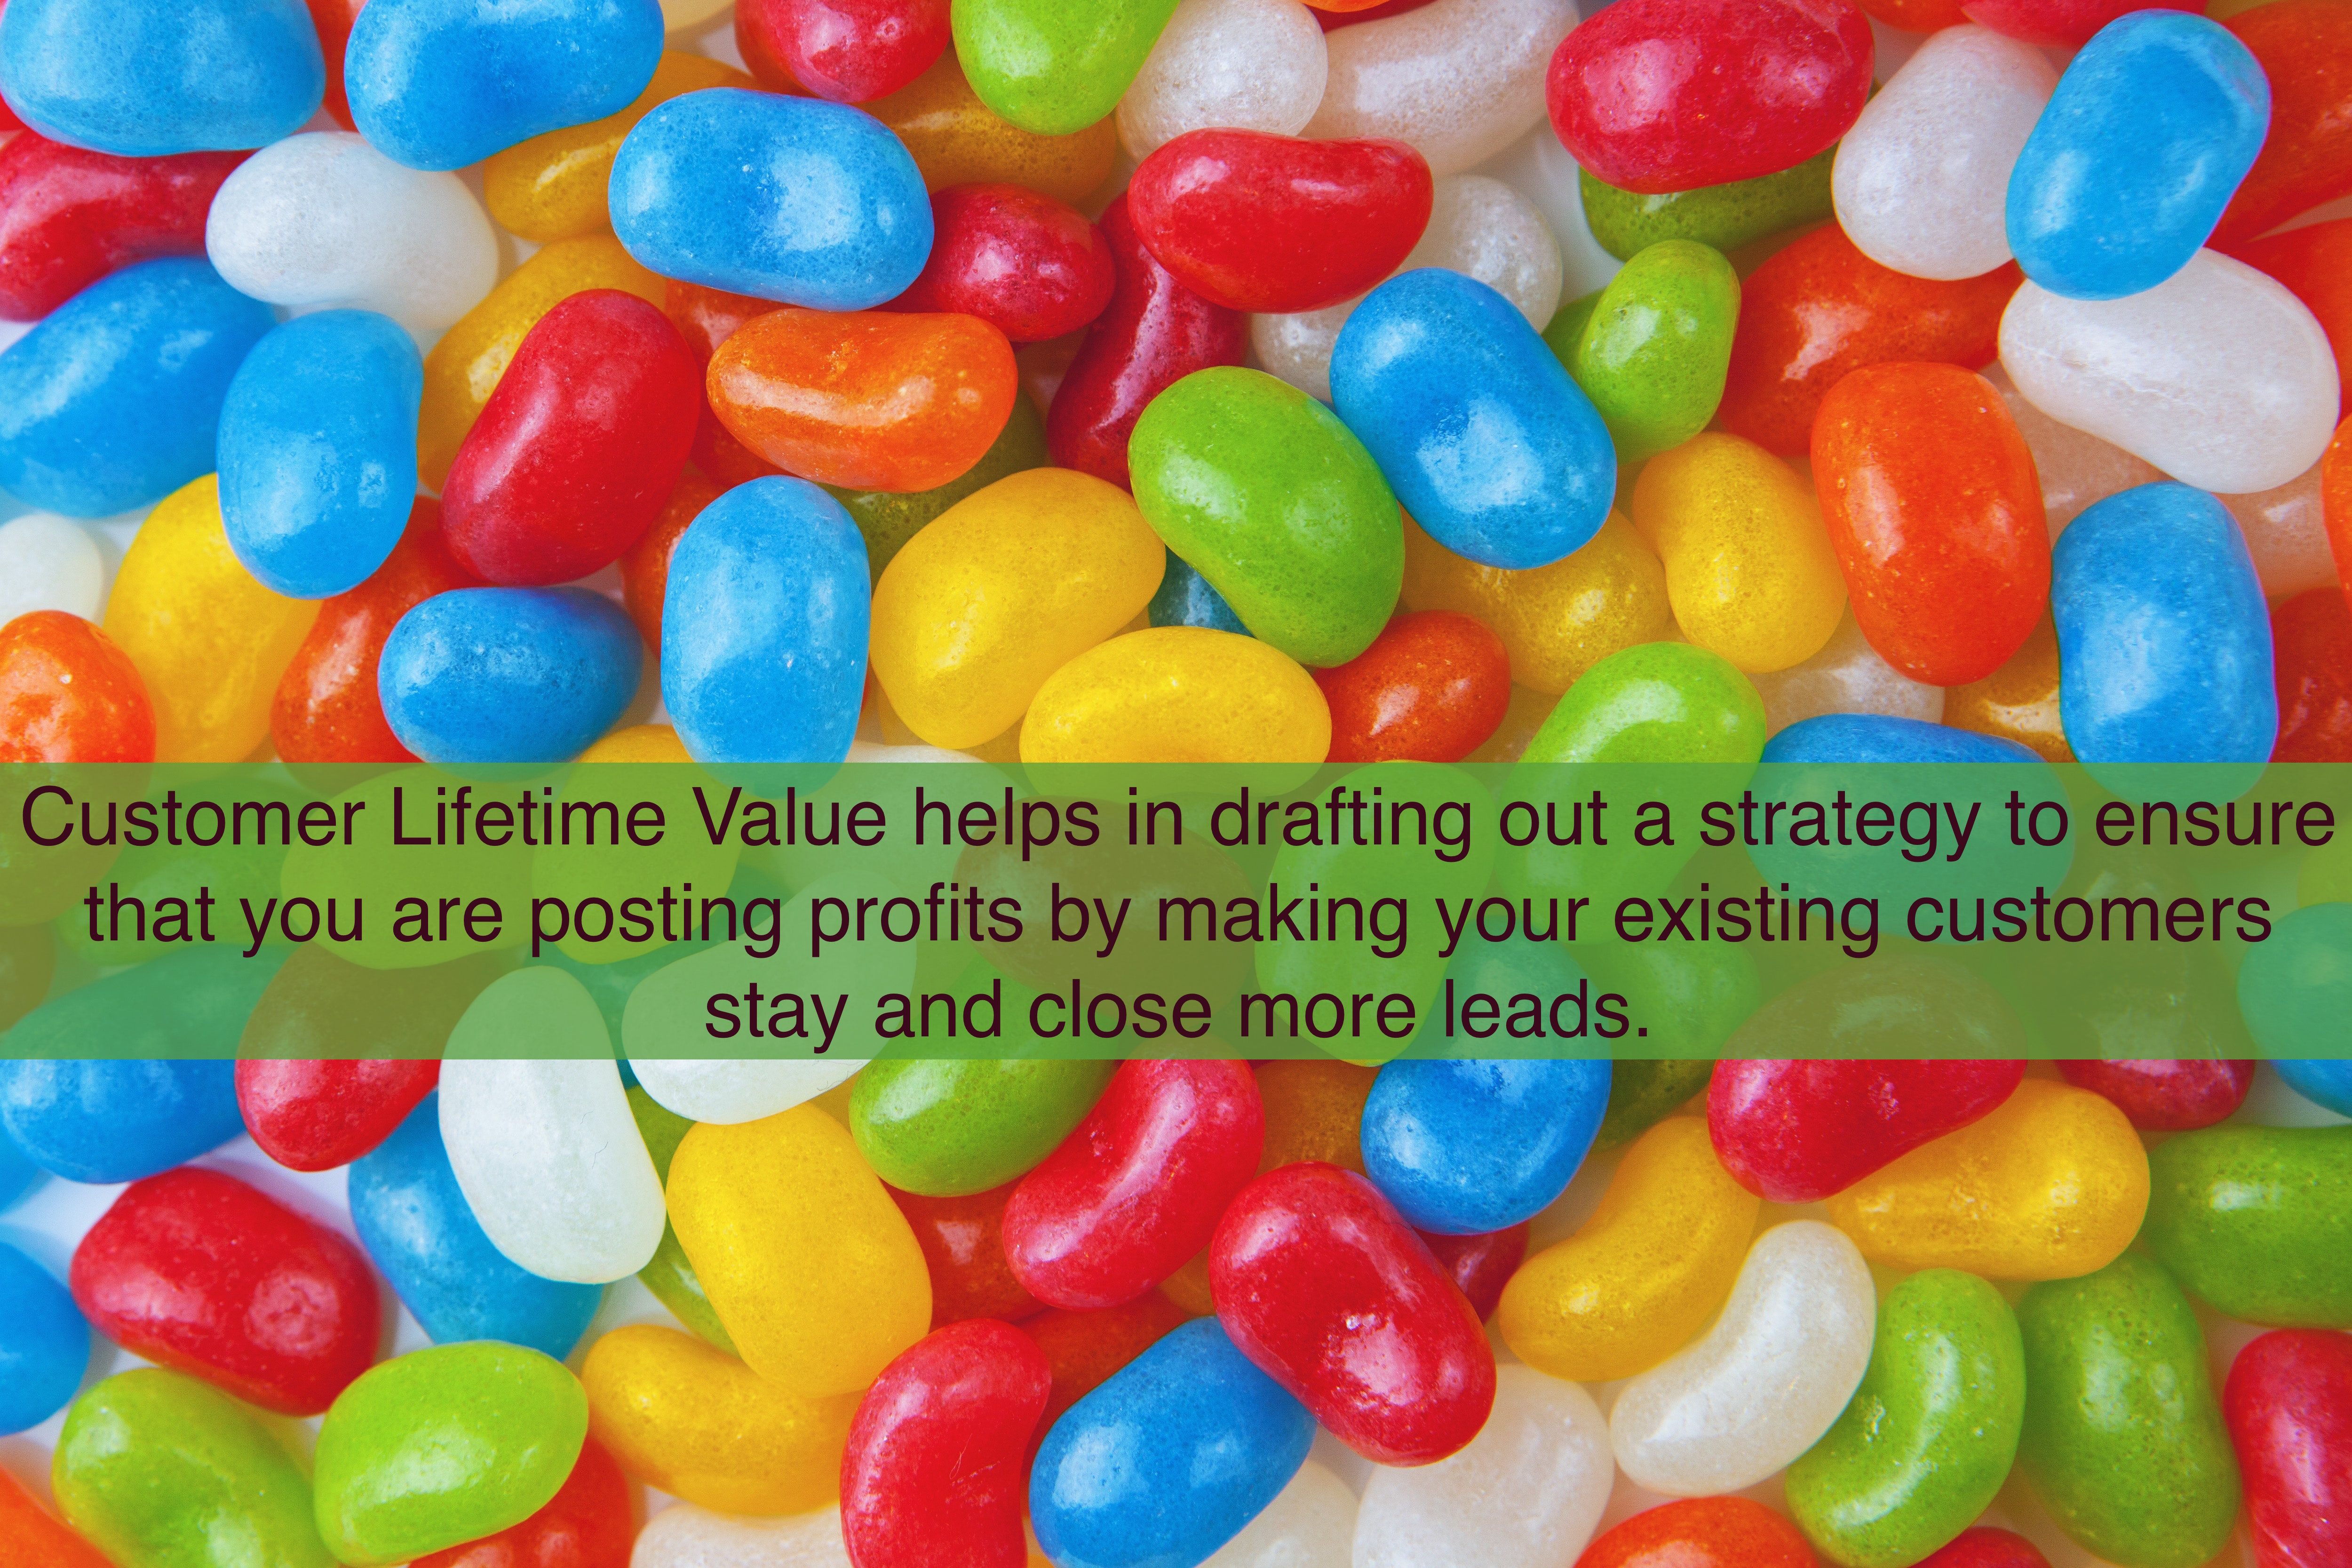 Customer Lifetime Value helps in drafting out a strategy to ensure that you are posting profits by making your existing customers stay and close more leads.